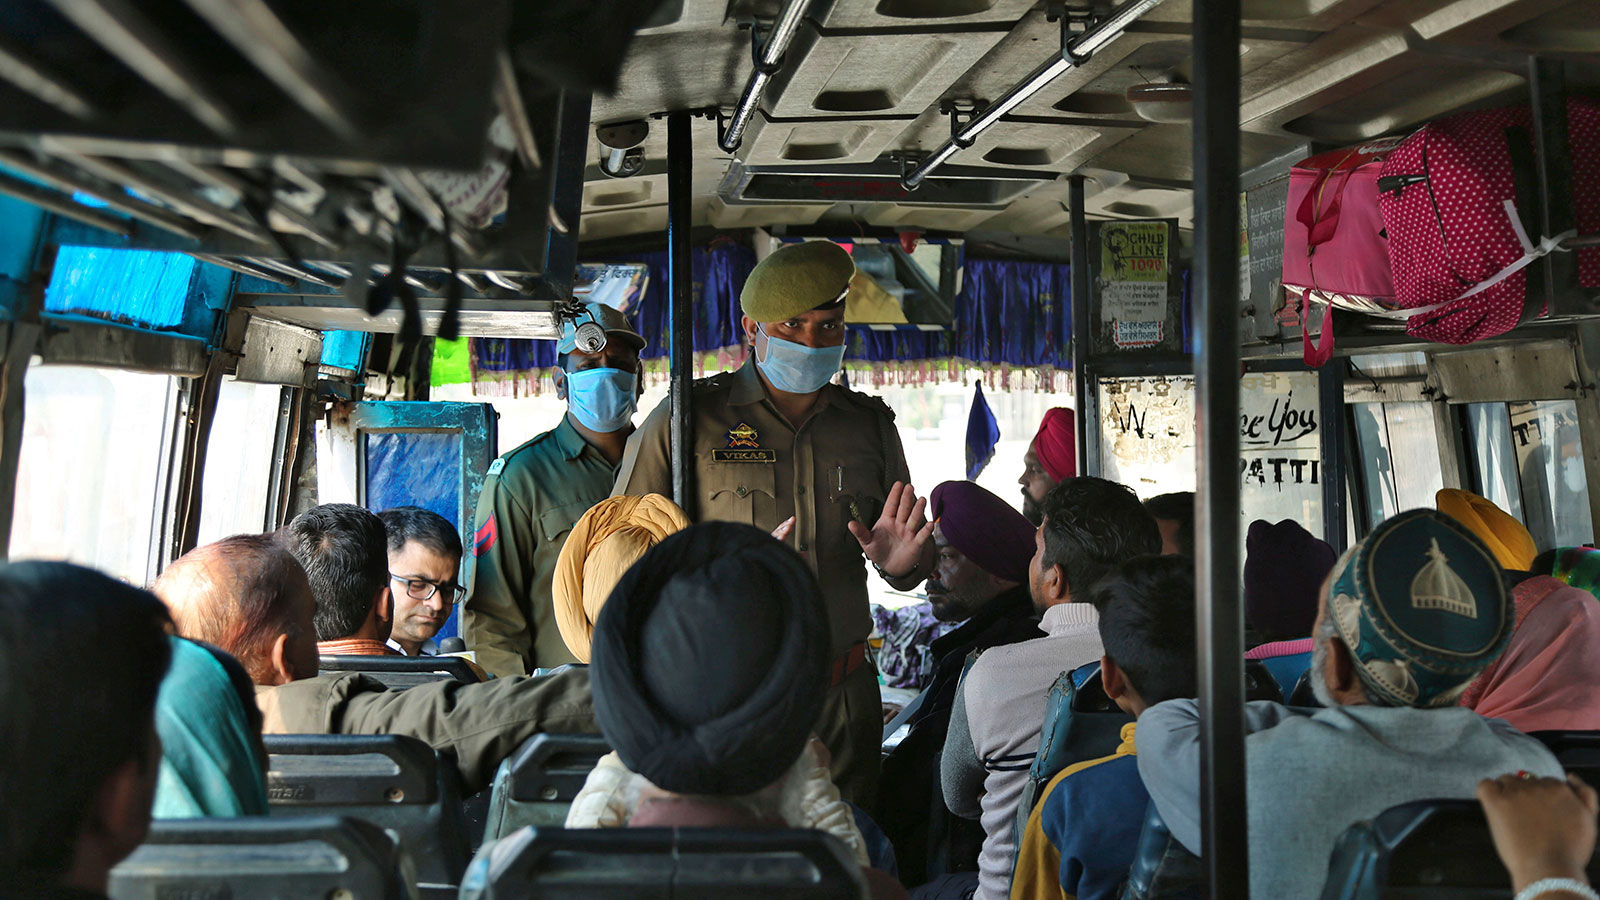 A Jammu and Kashmir police officer briefs bus passengers about the coronavirus in Lakhanpur, India on March 4.